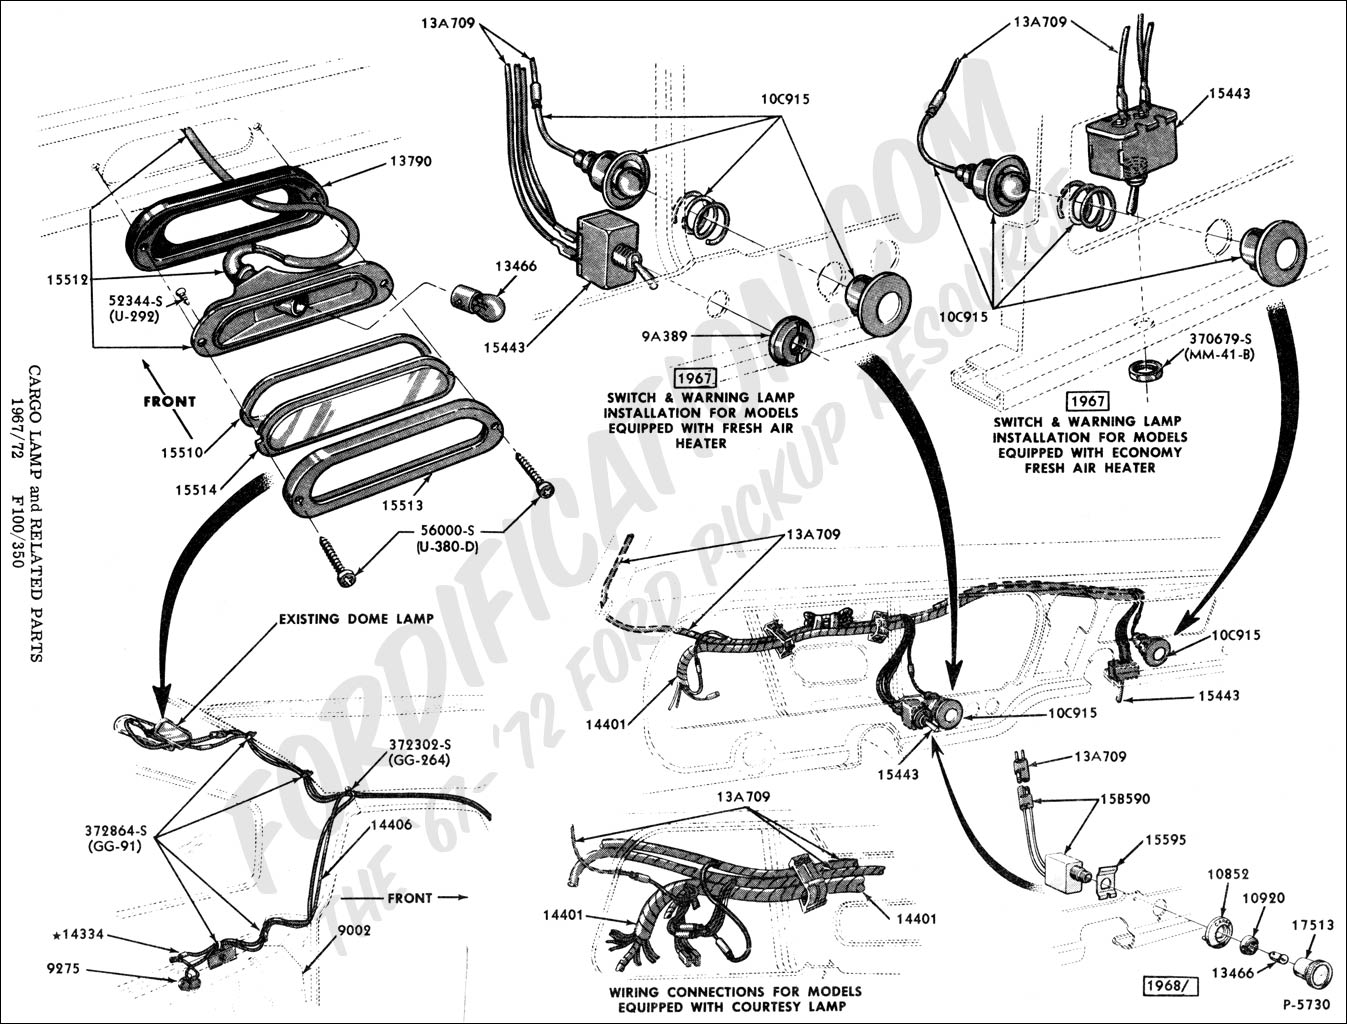 cargolight ford truck technical drawings and schematics section i 1969 ford f100 steering column wiring diagram at gsmportal.co